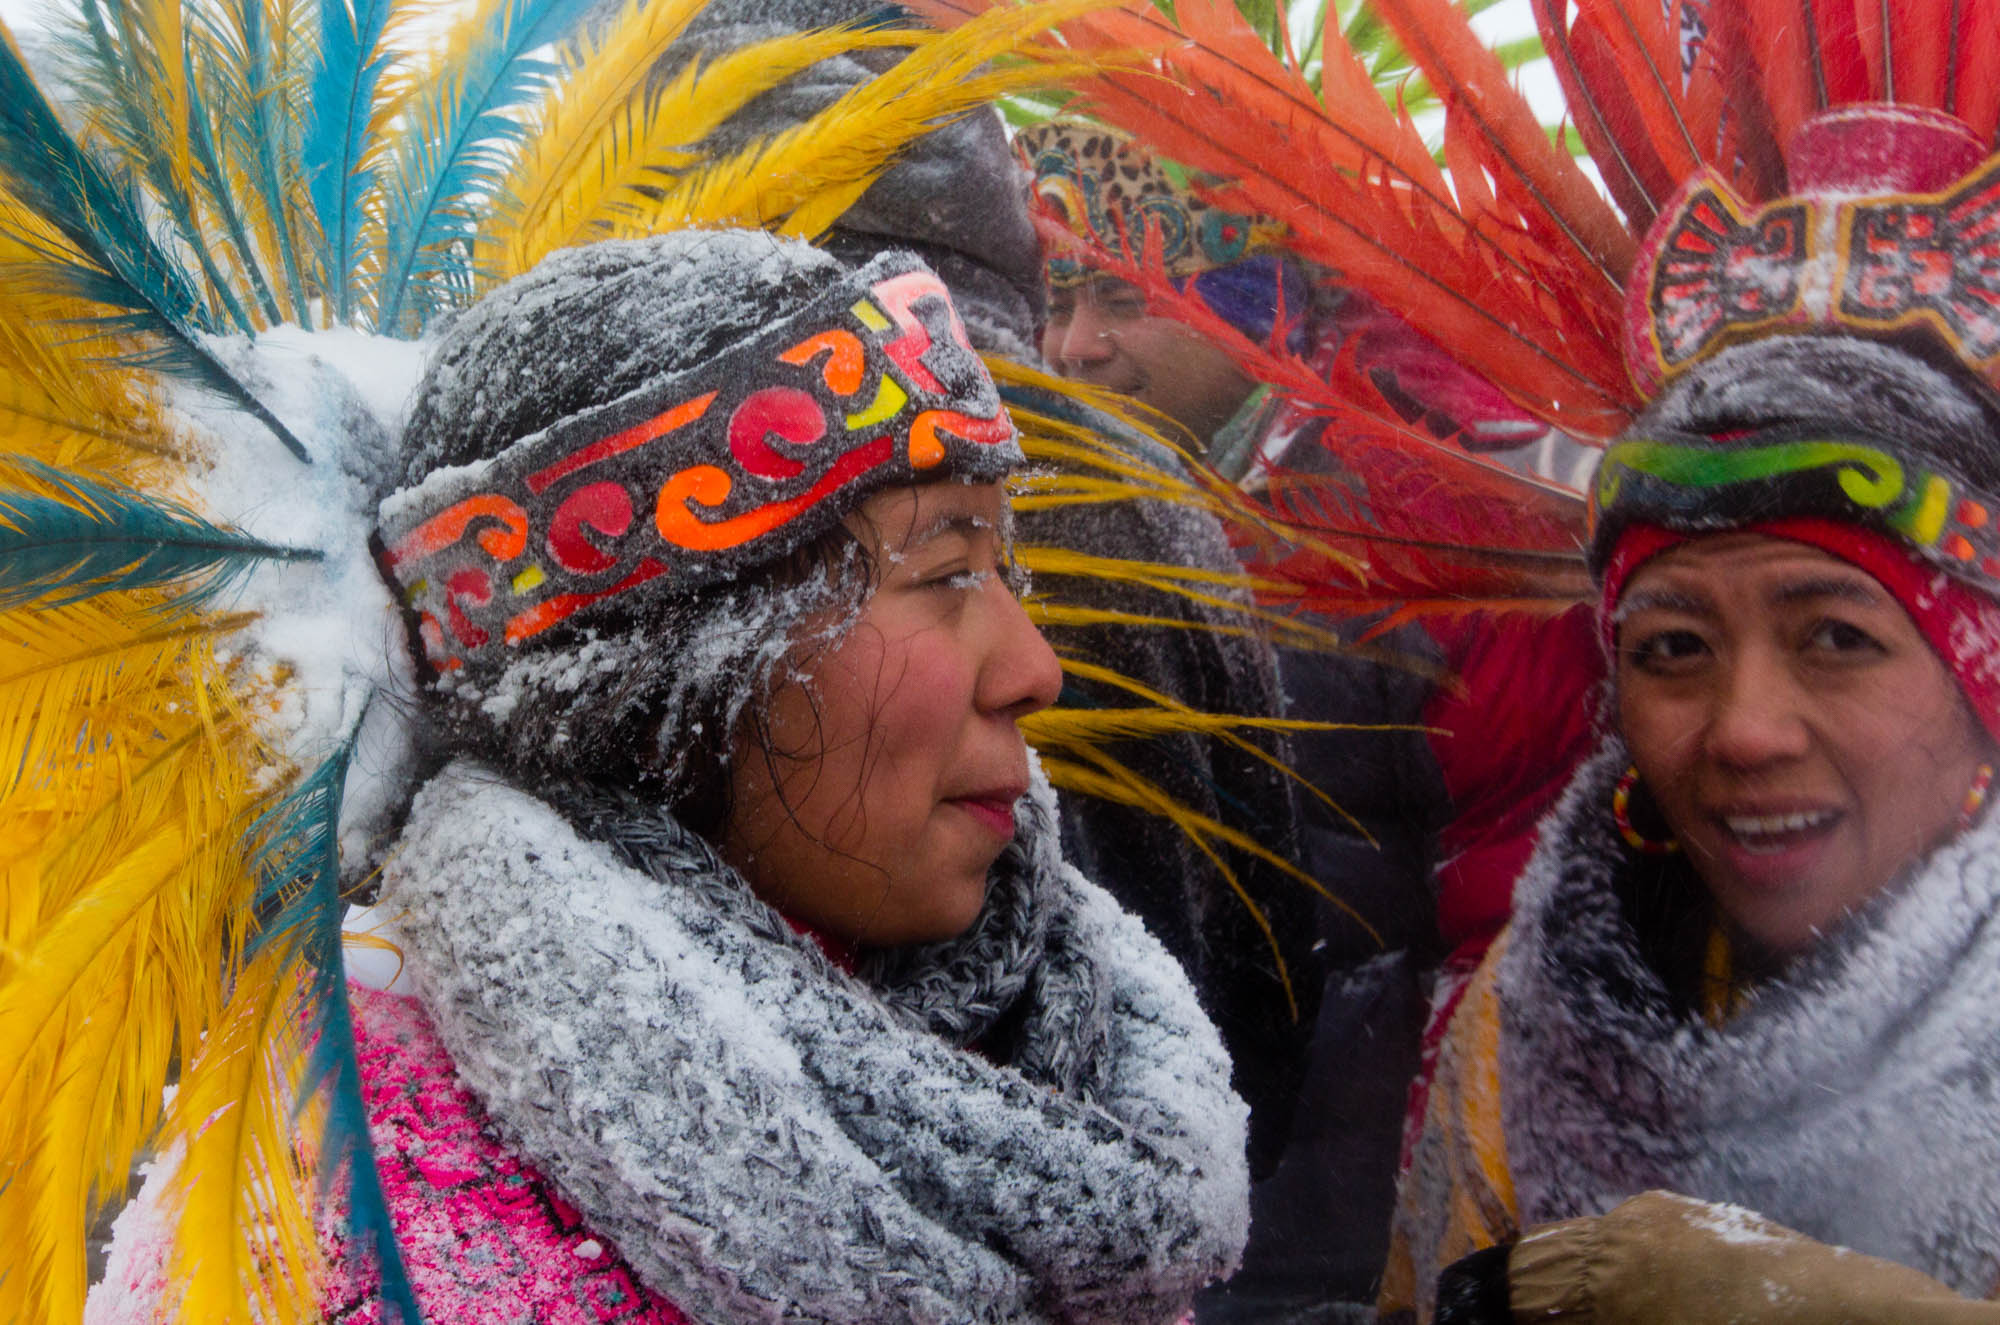 Snow dusts Alquetzali Quirozo's eyelashes and regalia as she walks along highway 1806 back to the Oceti Sakowin Camp. Quirozo danced with her parents during the veterans march to the frontlines on December 5, 2016.